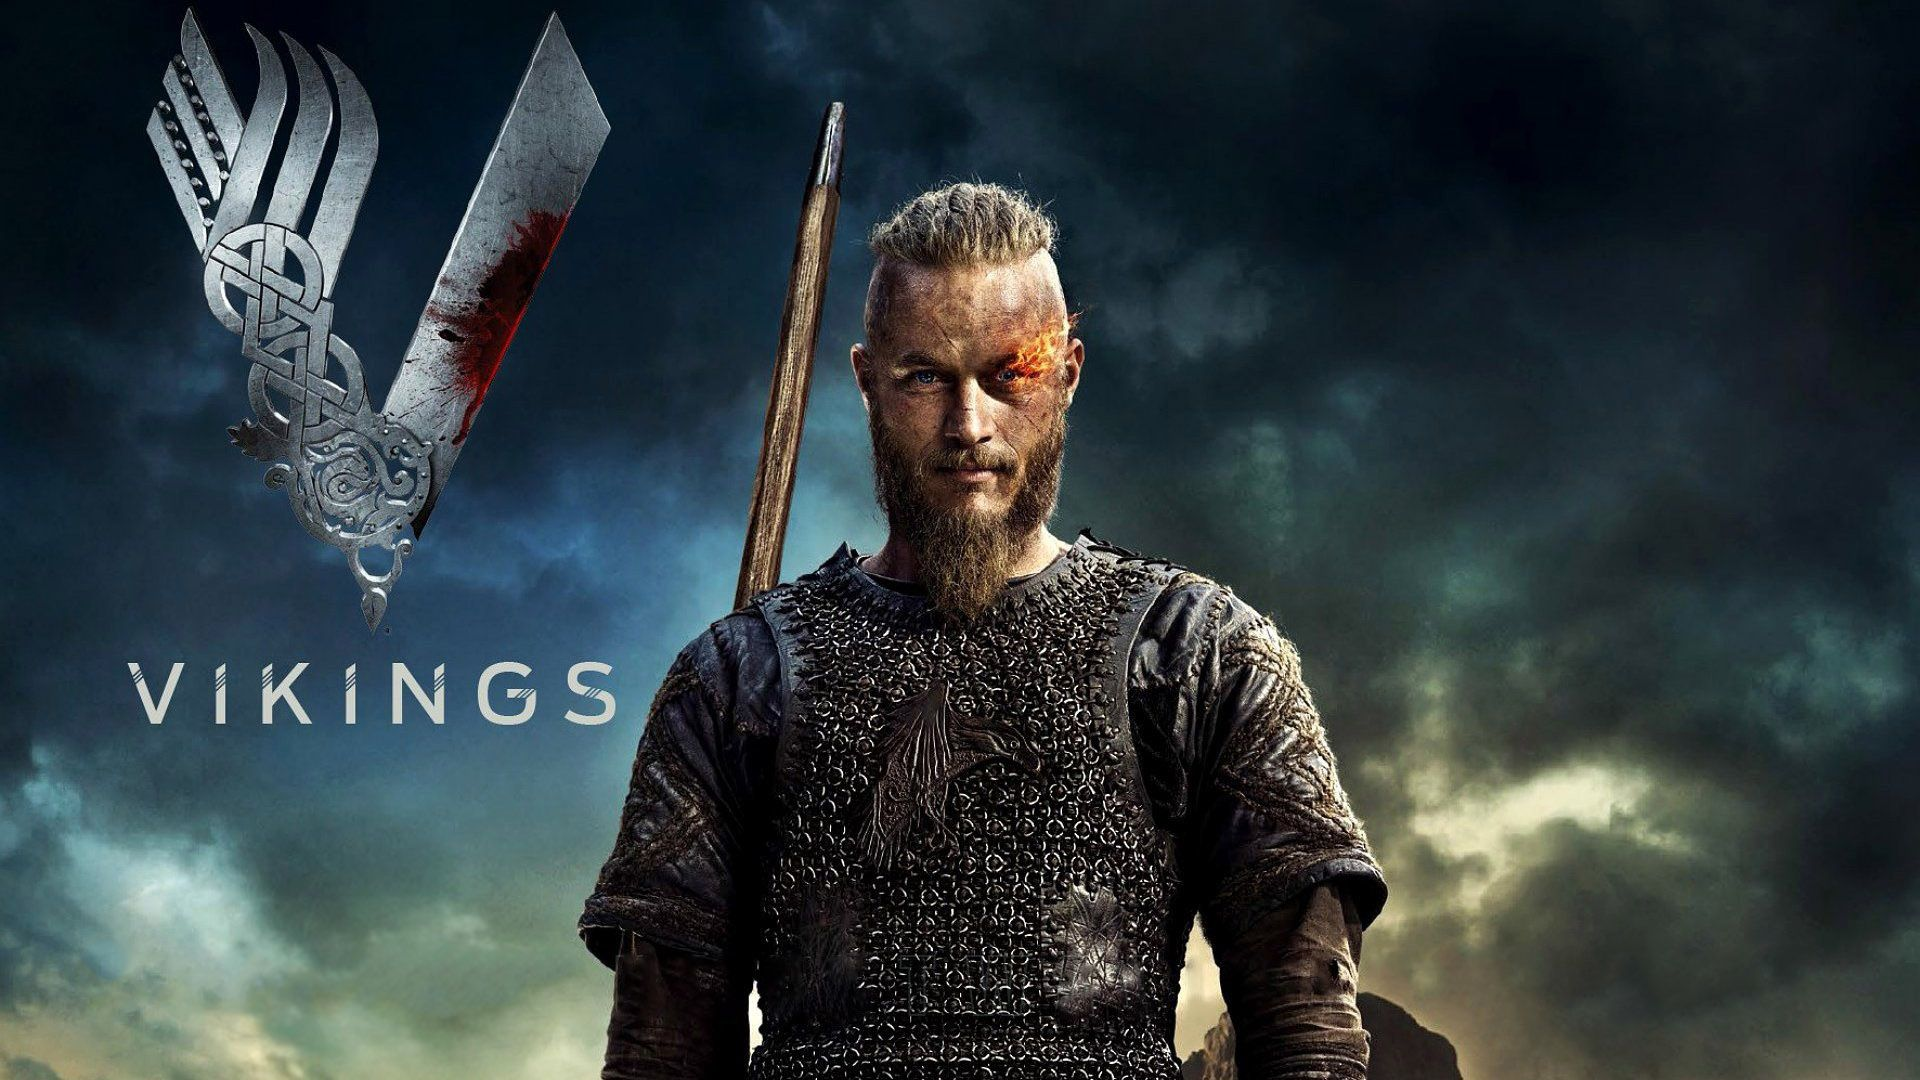 ragnar lothbrok actor - Google Search